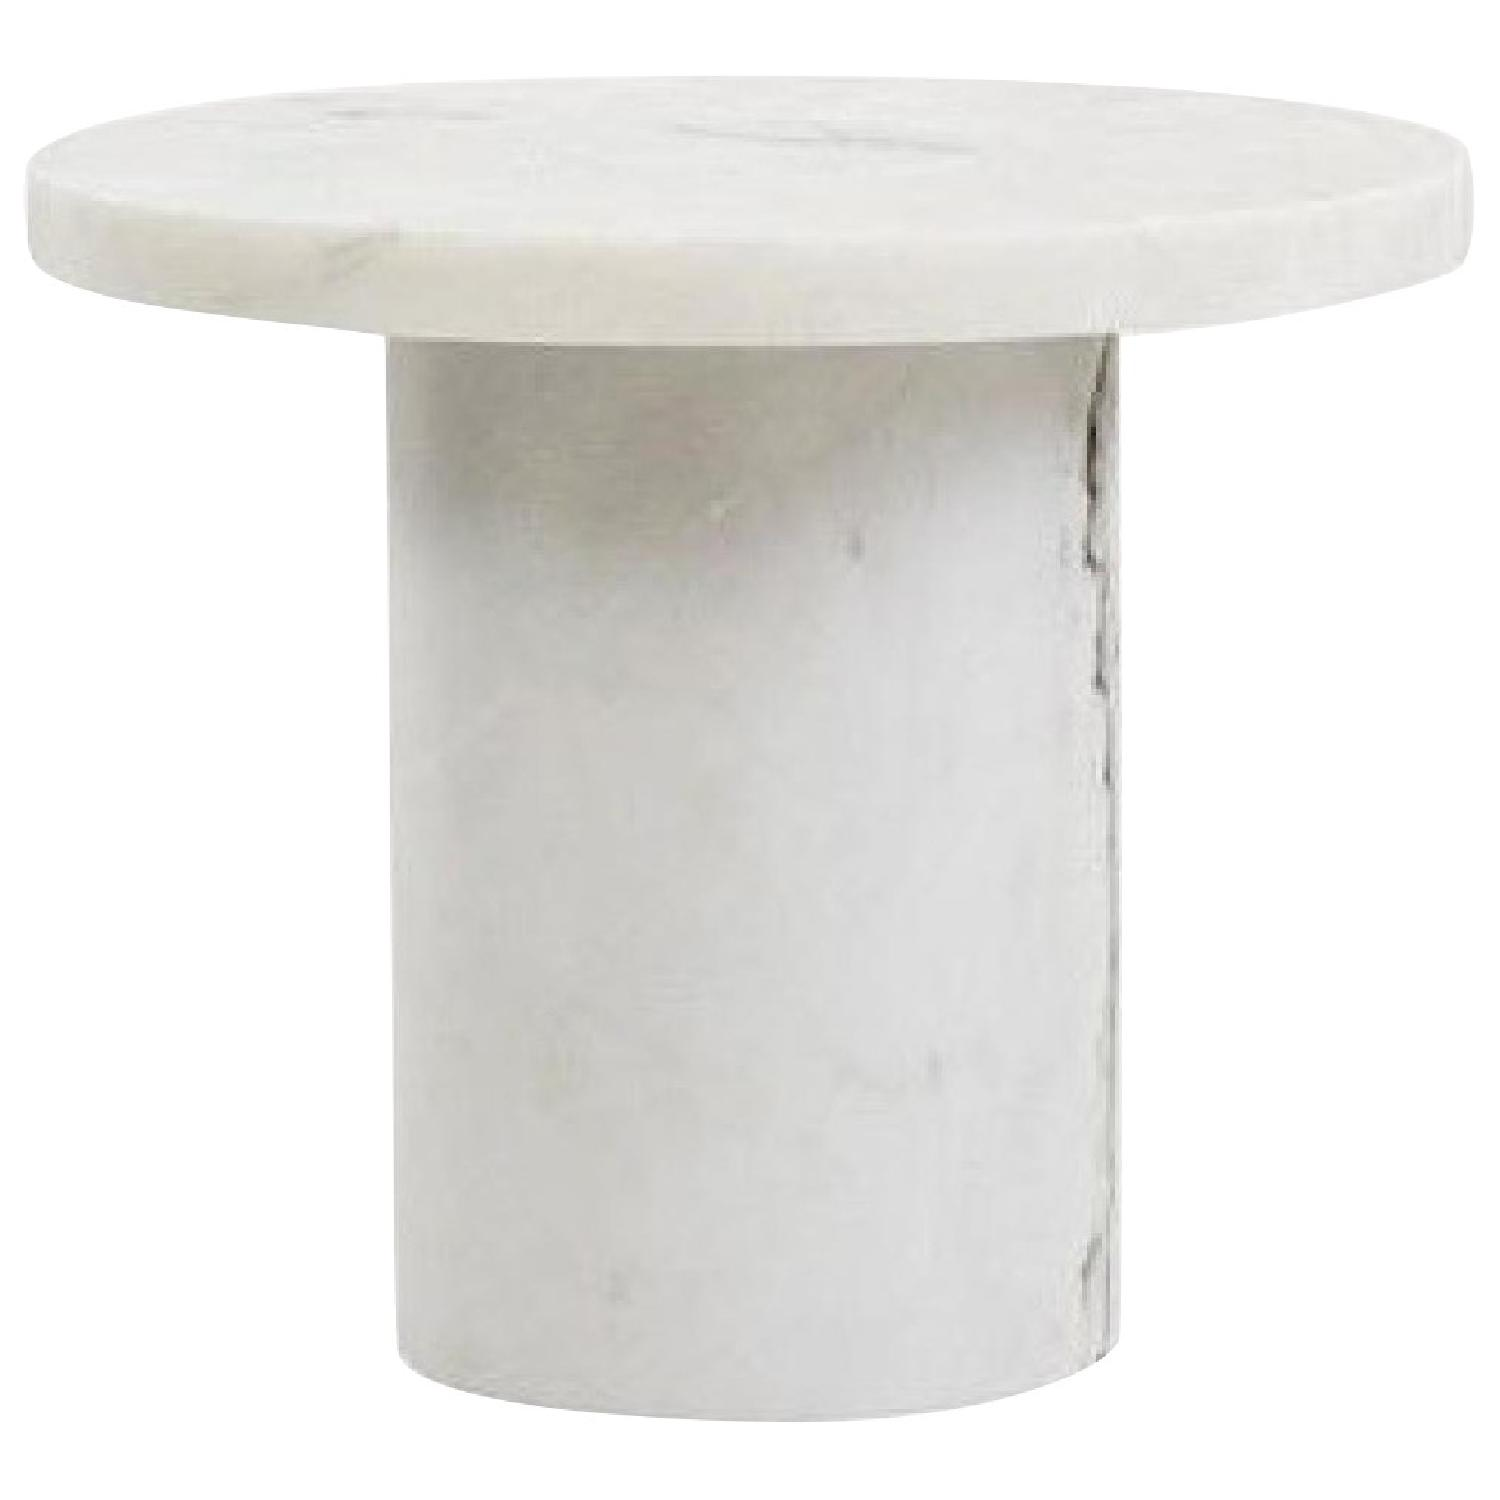 Frama Sintra Marble Edition in Whites - image-0